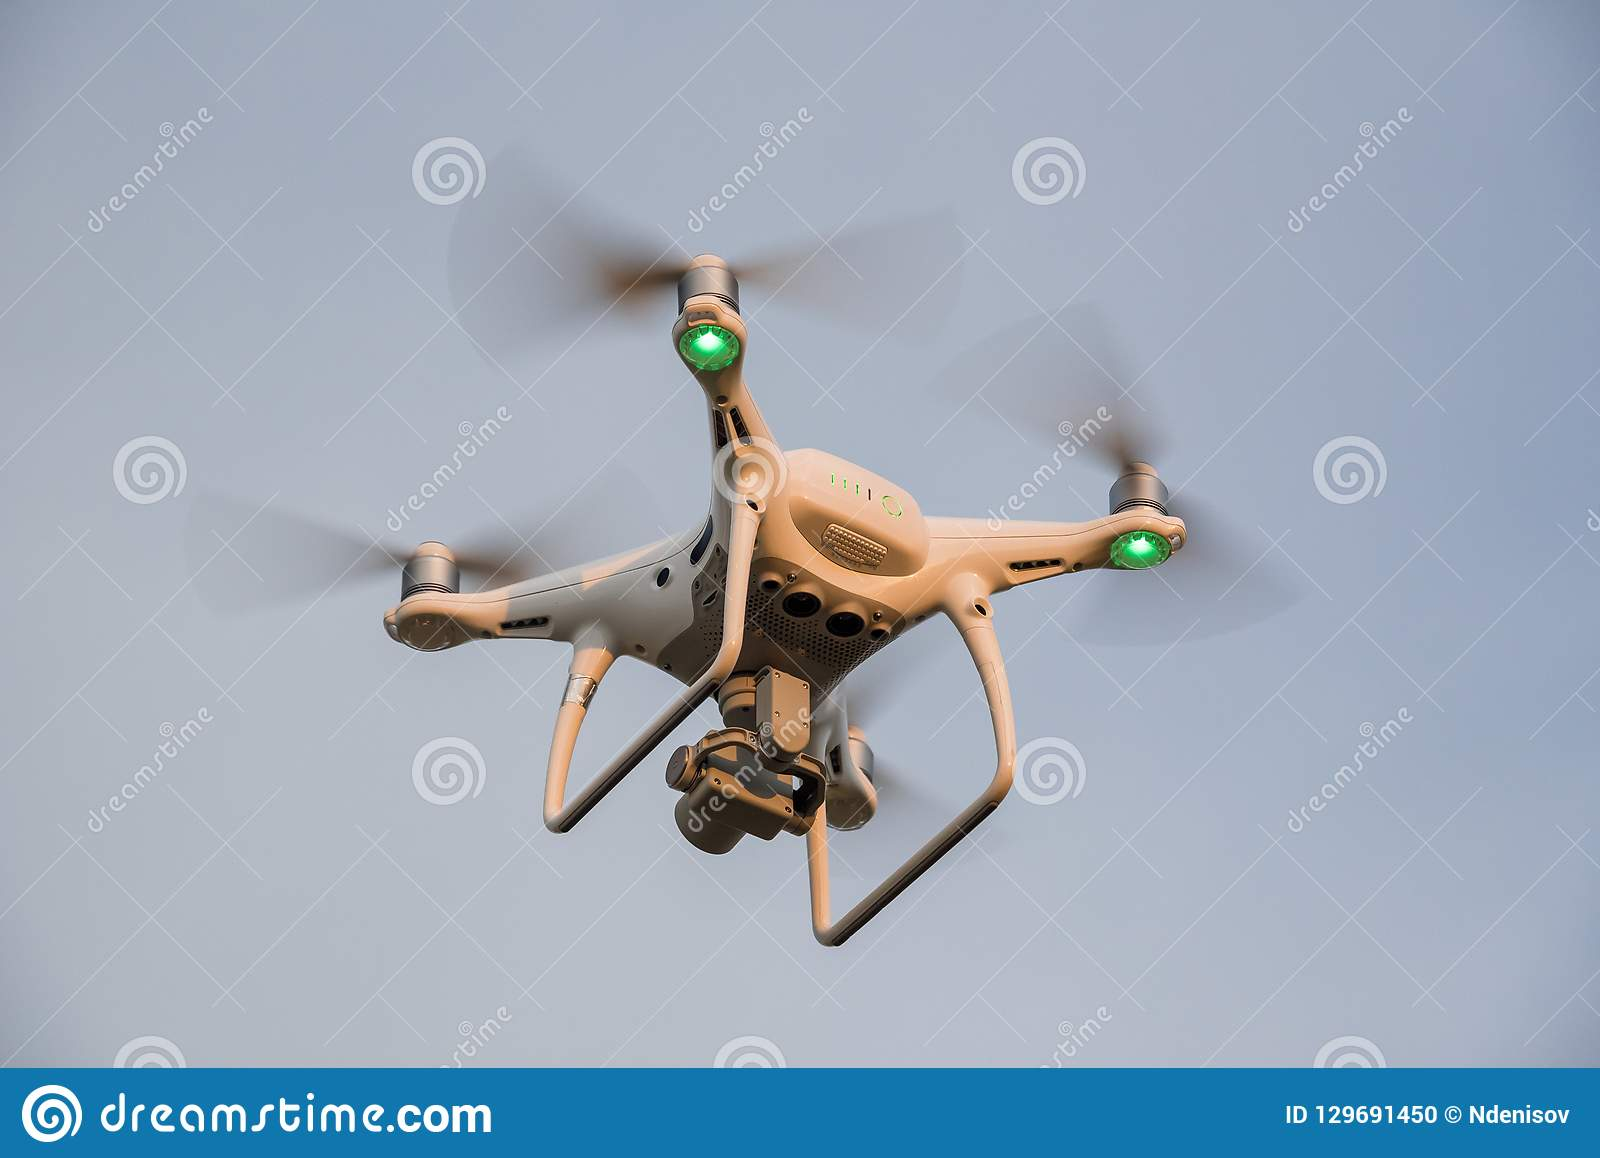 Demonstration Flight Drone DJI Phantom 4 Pro Stock Photo - Image of